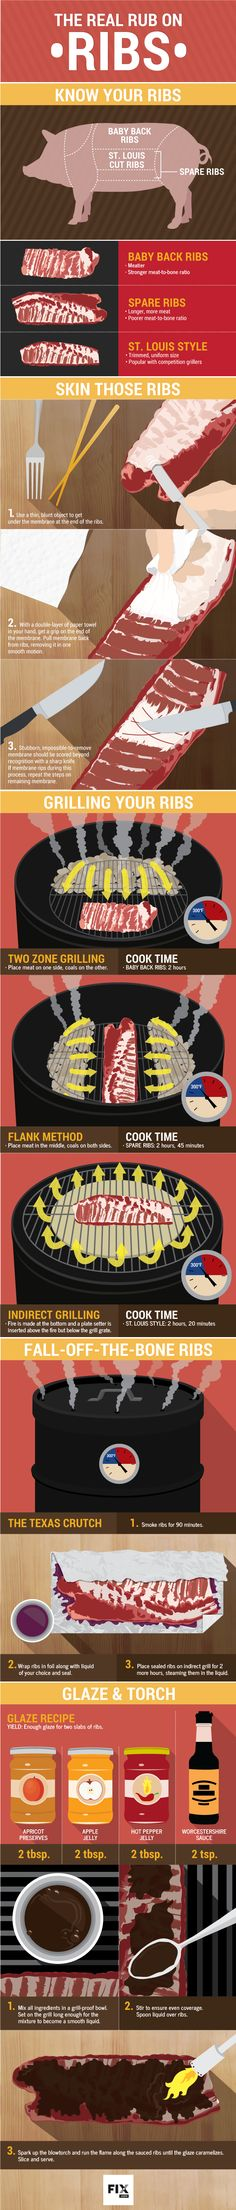 Learn to grill delicious, fall-off-the-bone ribs! #Grilling